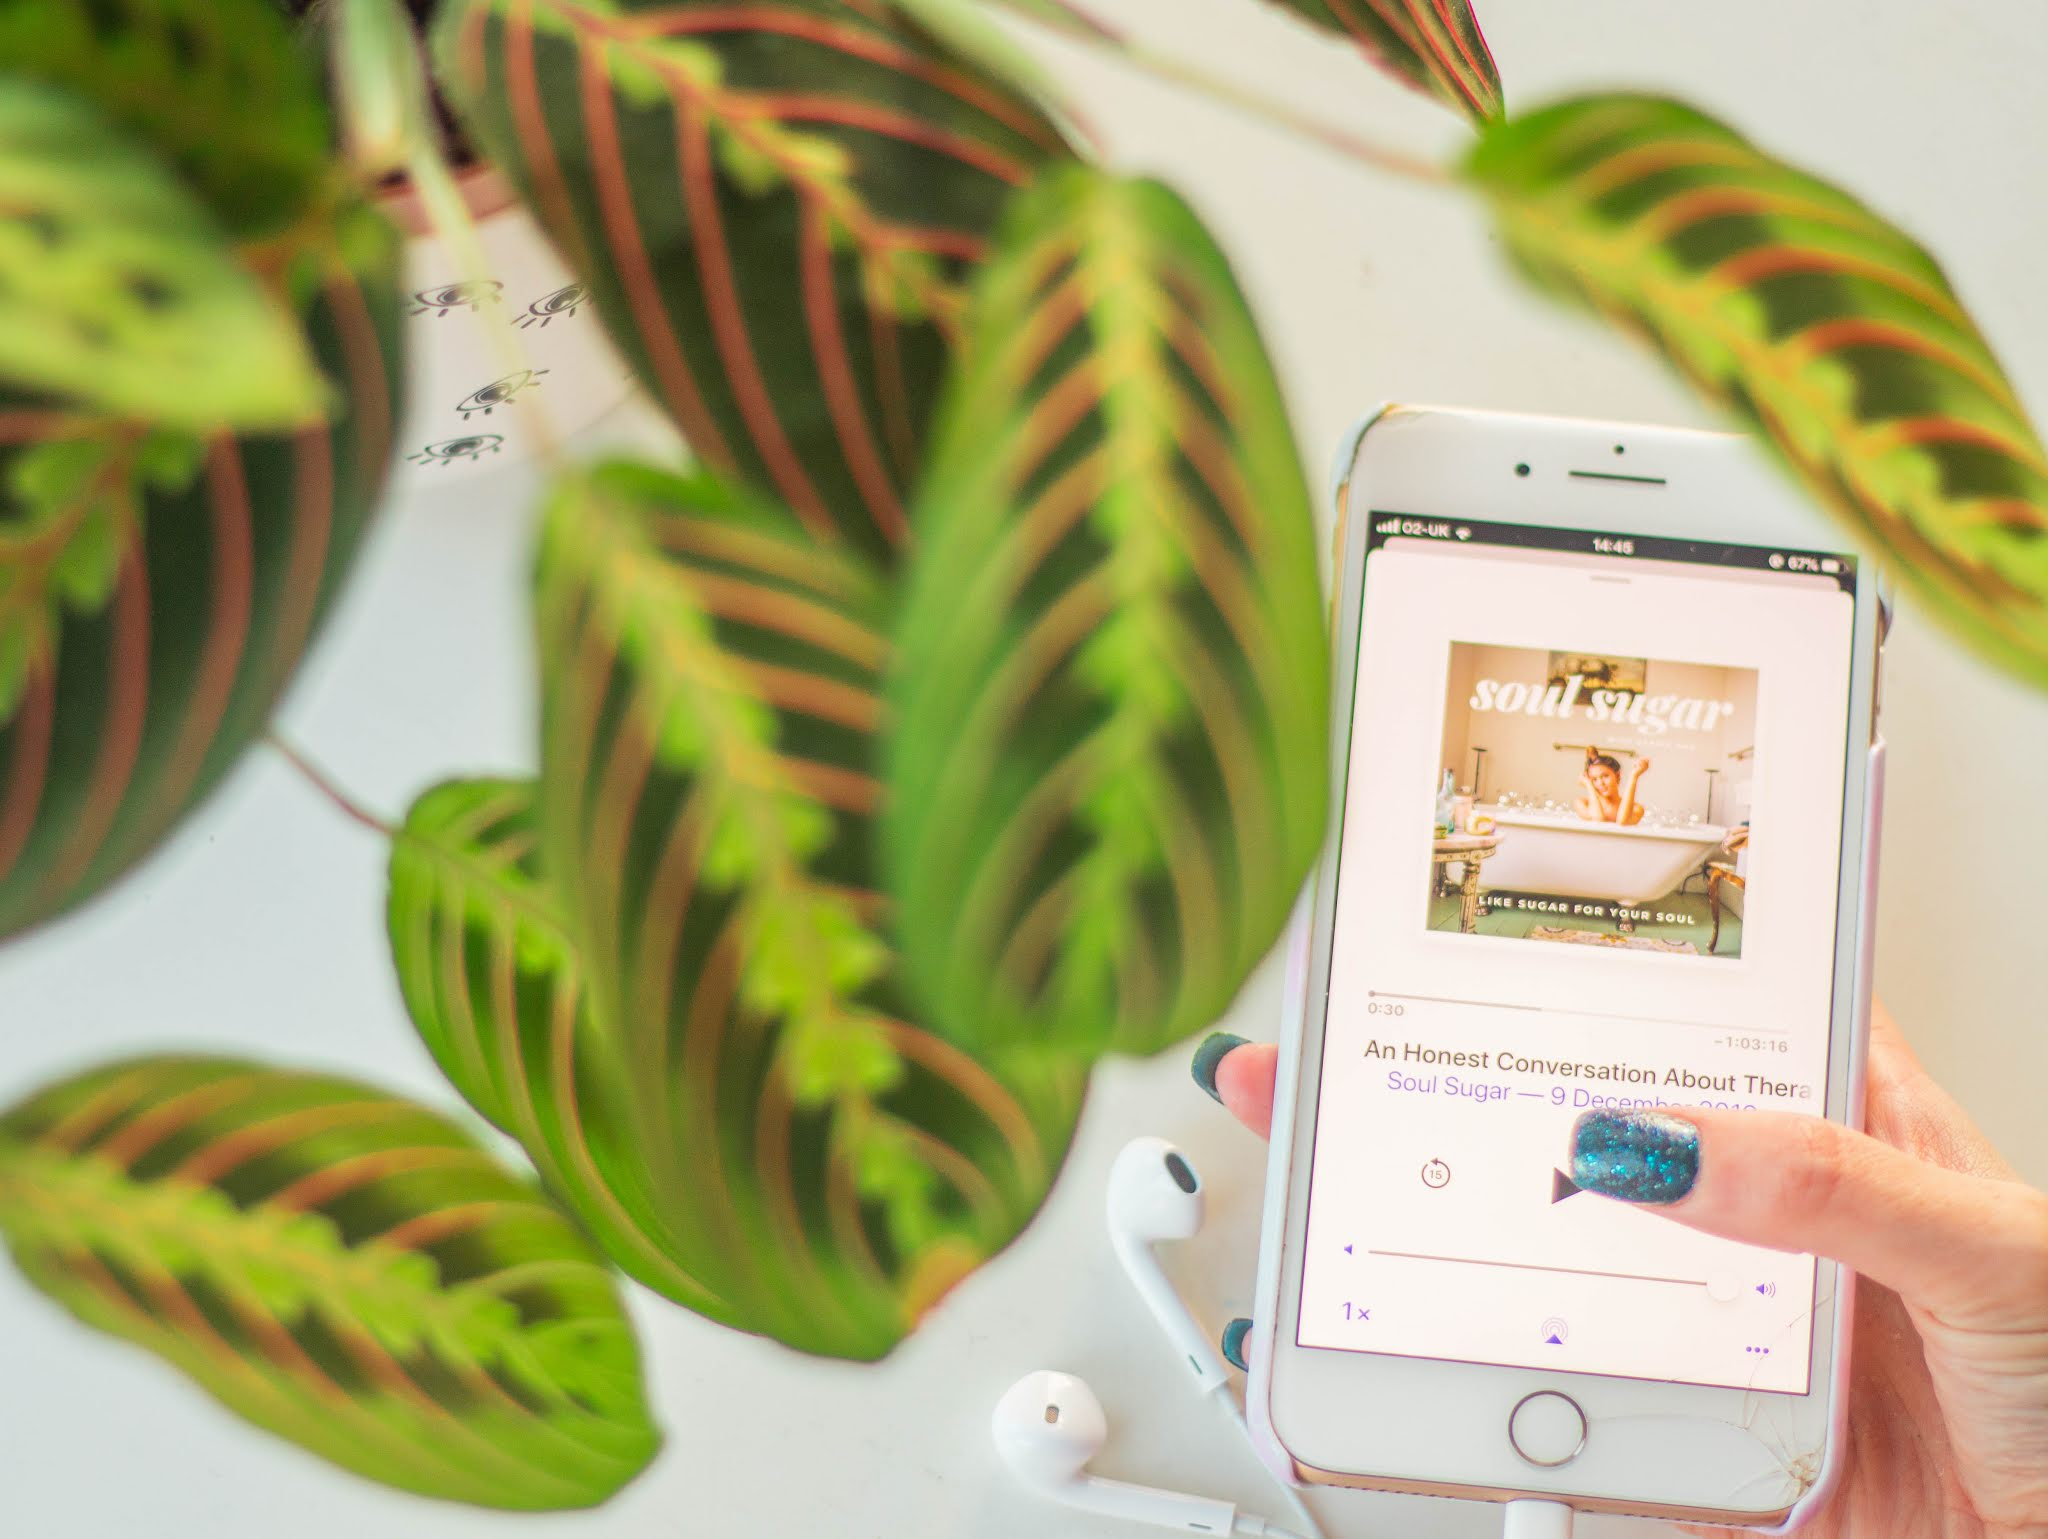 iphone showing top 2019 podcast - soul sugar by carrie rad - with plant - self care - intentional living